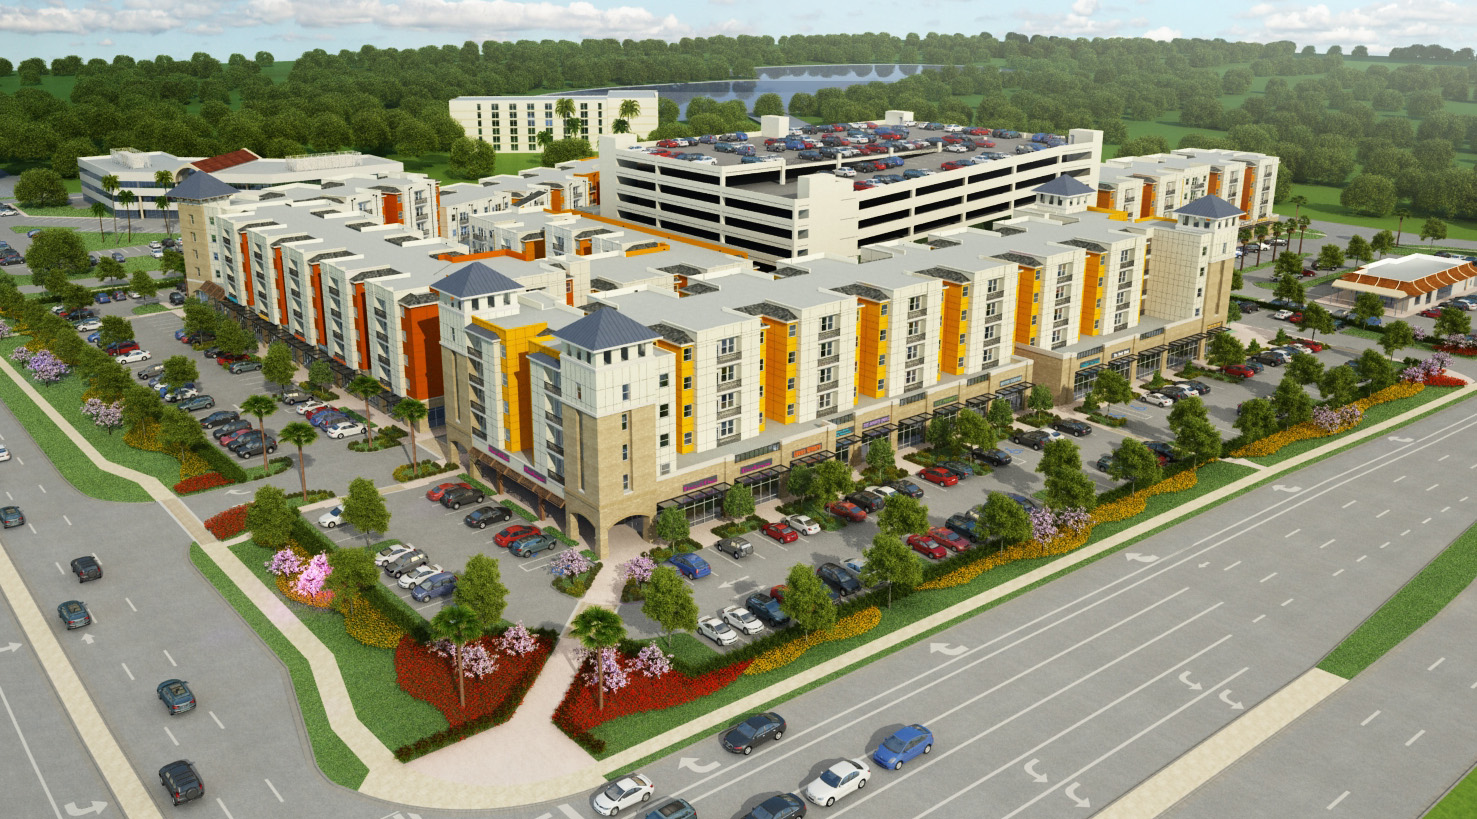 UCF's New Plaza: See Pictures Of Planned Apartments, Retail